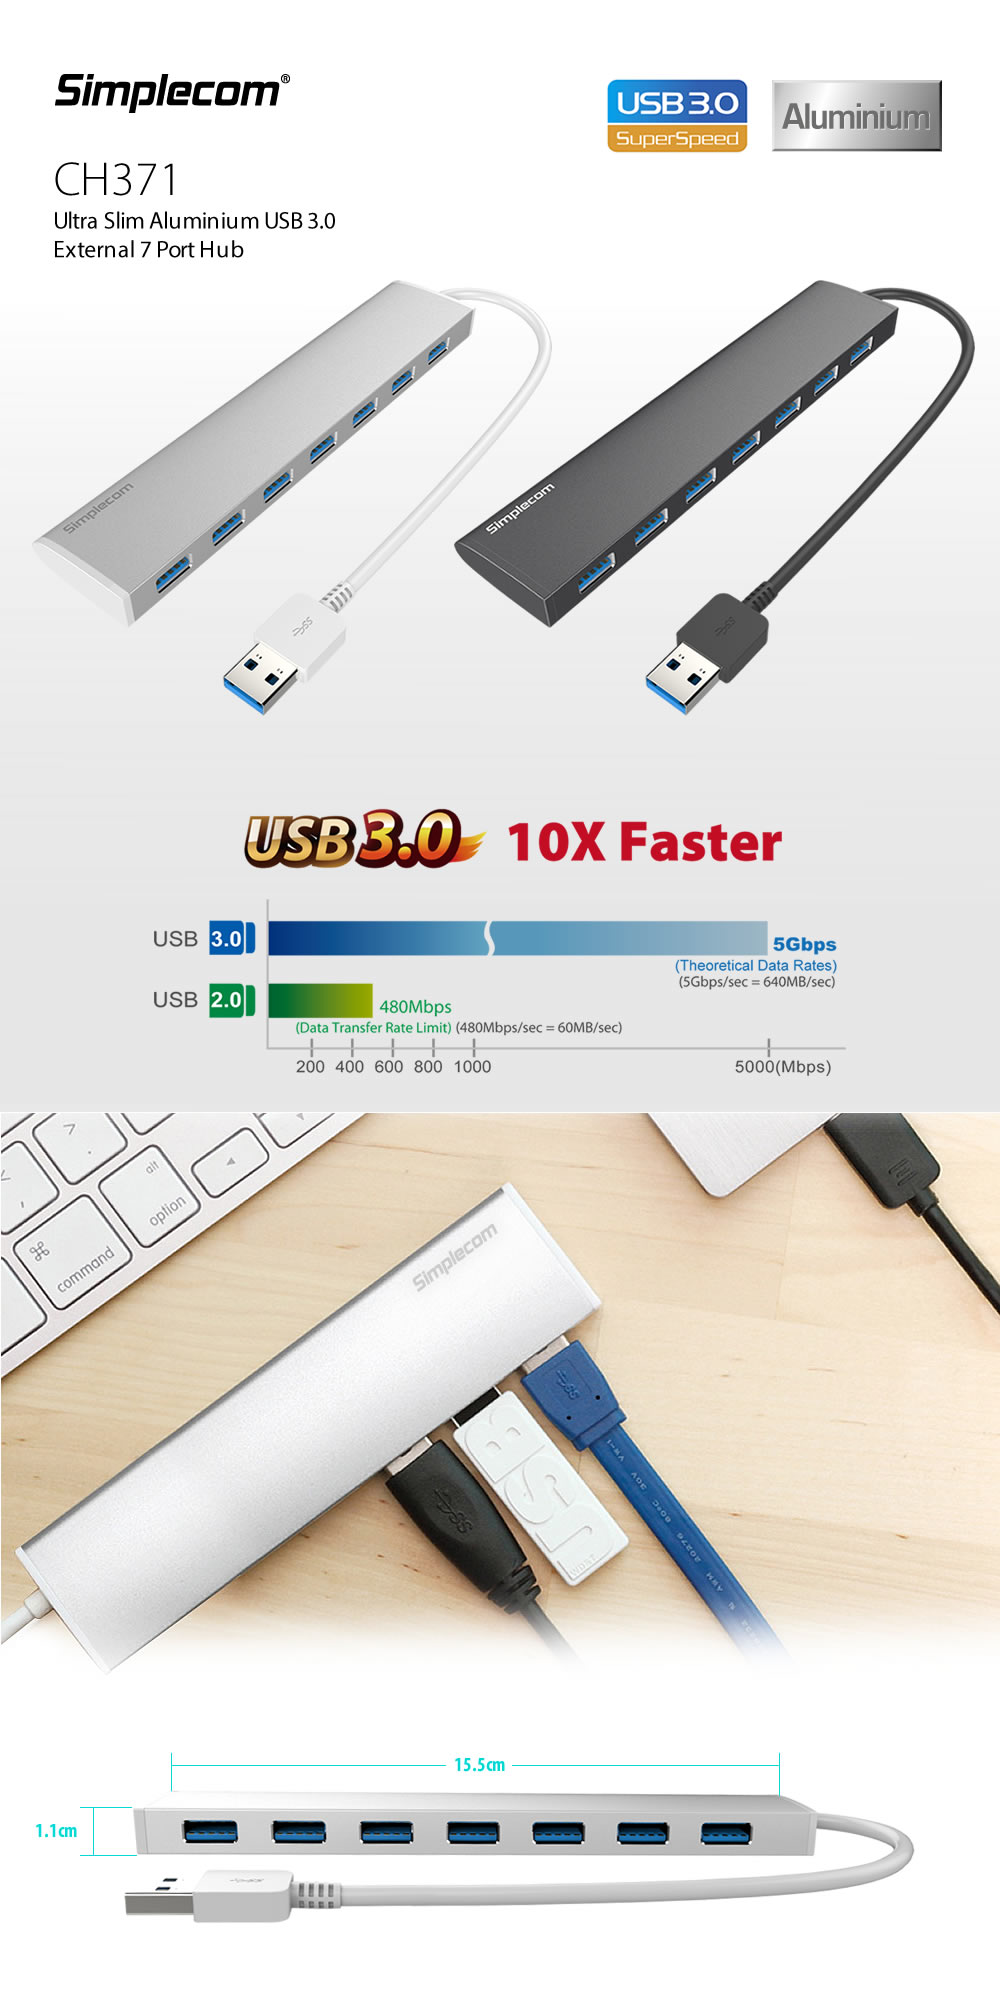 Simplecom Ch371 Ultra Slim Aluminium 7 Port Usb 30 Hub For Pc Mac 1 Transfer Rate With You Can Instantly Expand Connectivity Super Speed Ports